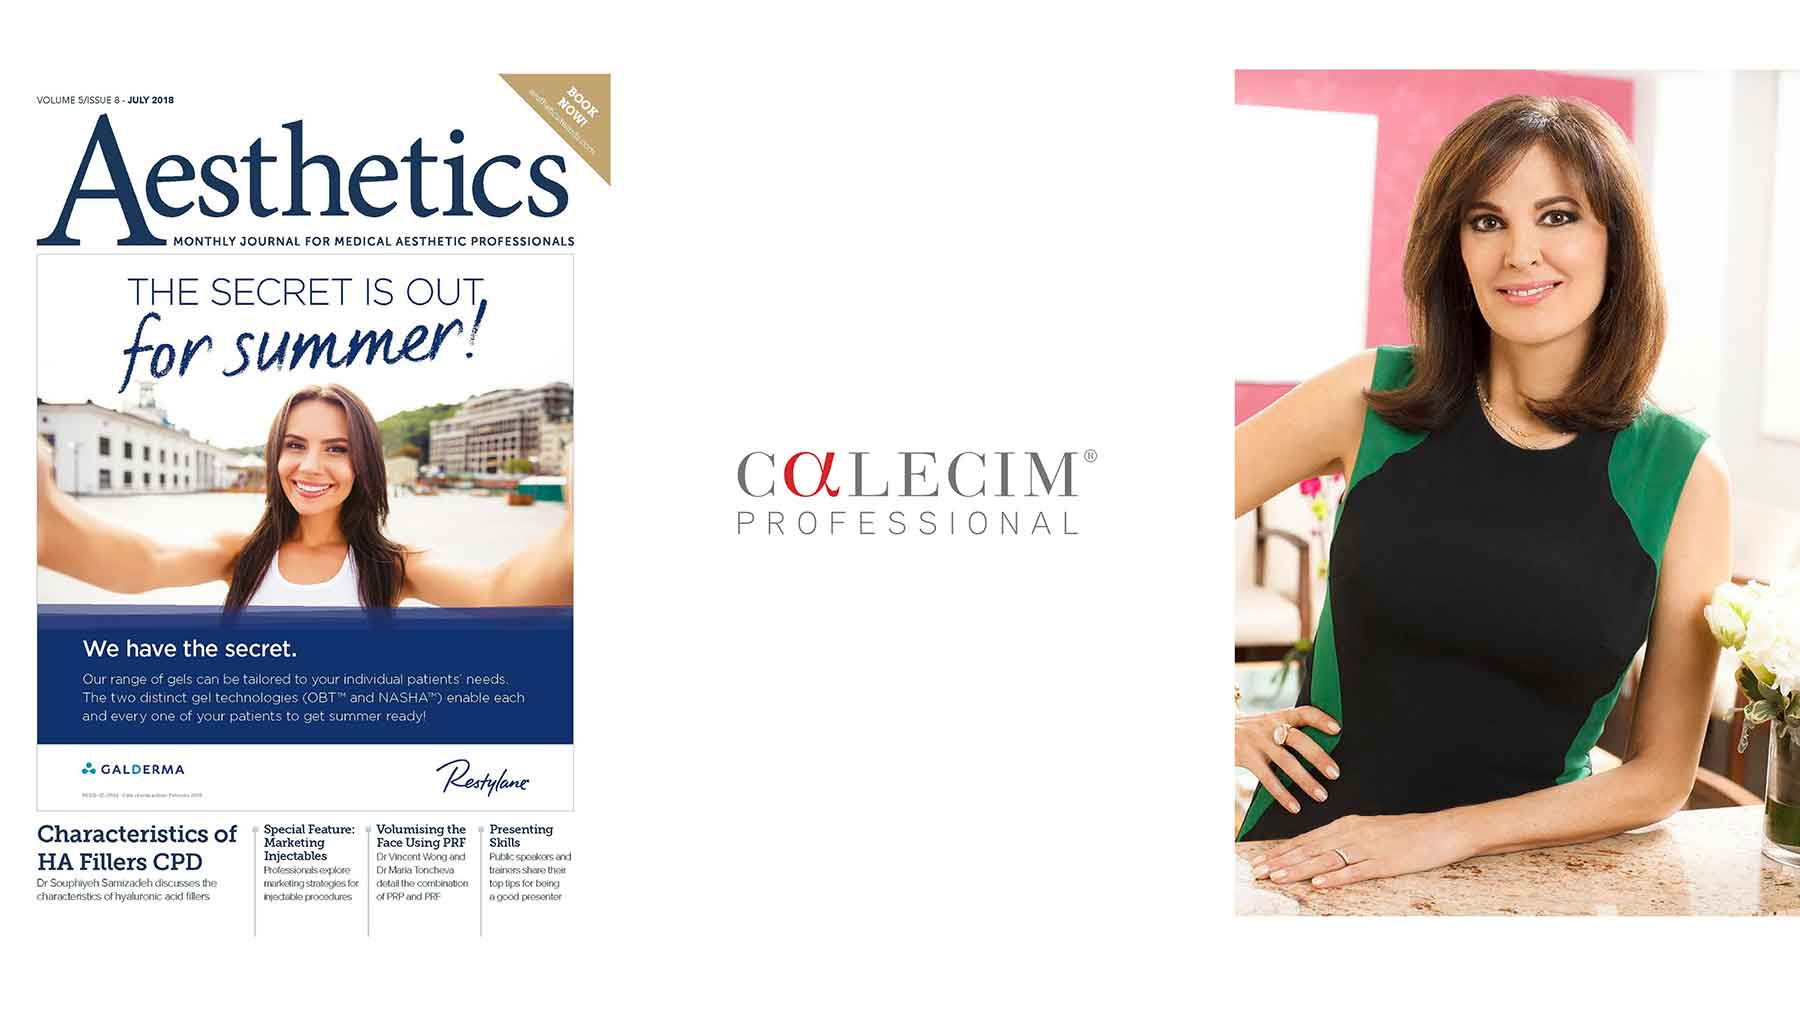 Spotlight on CALECIM® Professional. Published in Aesthetics Journal July 2018